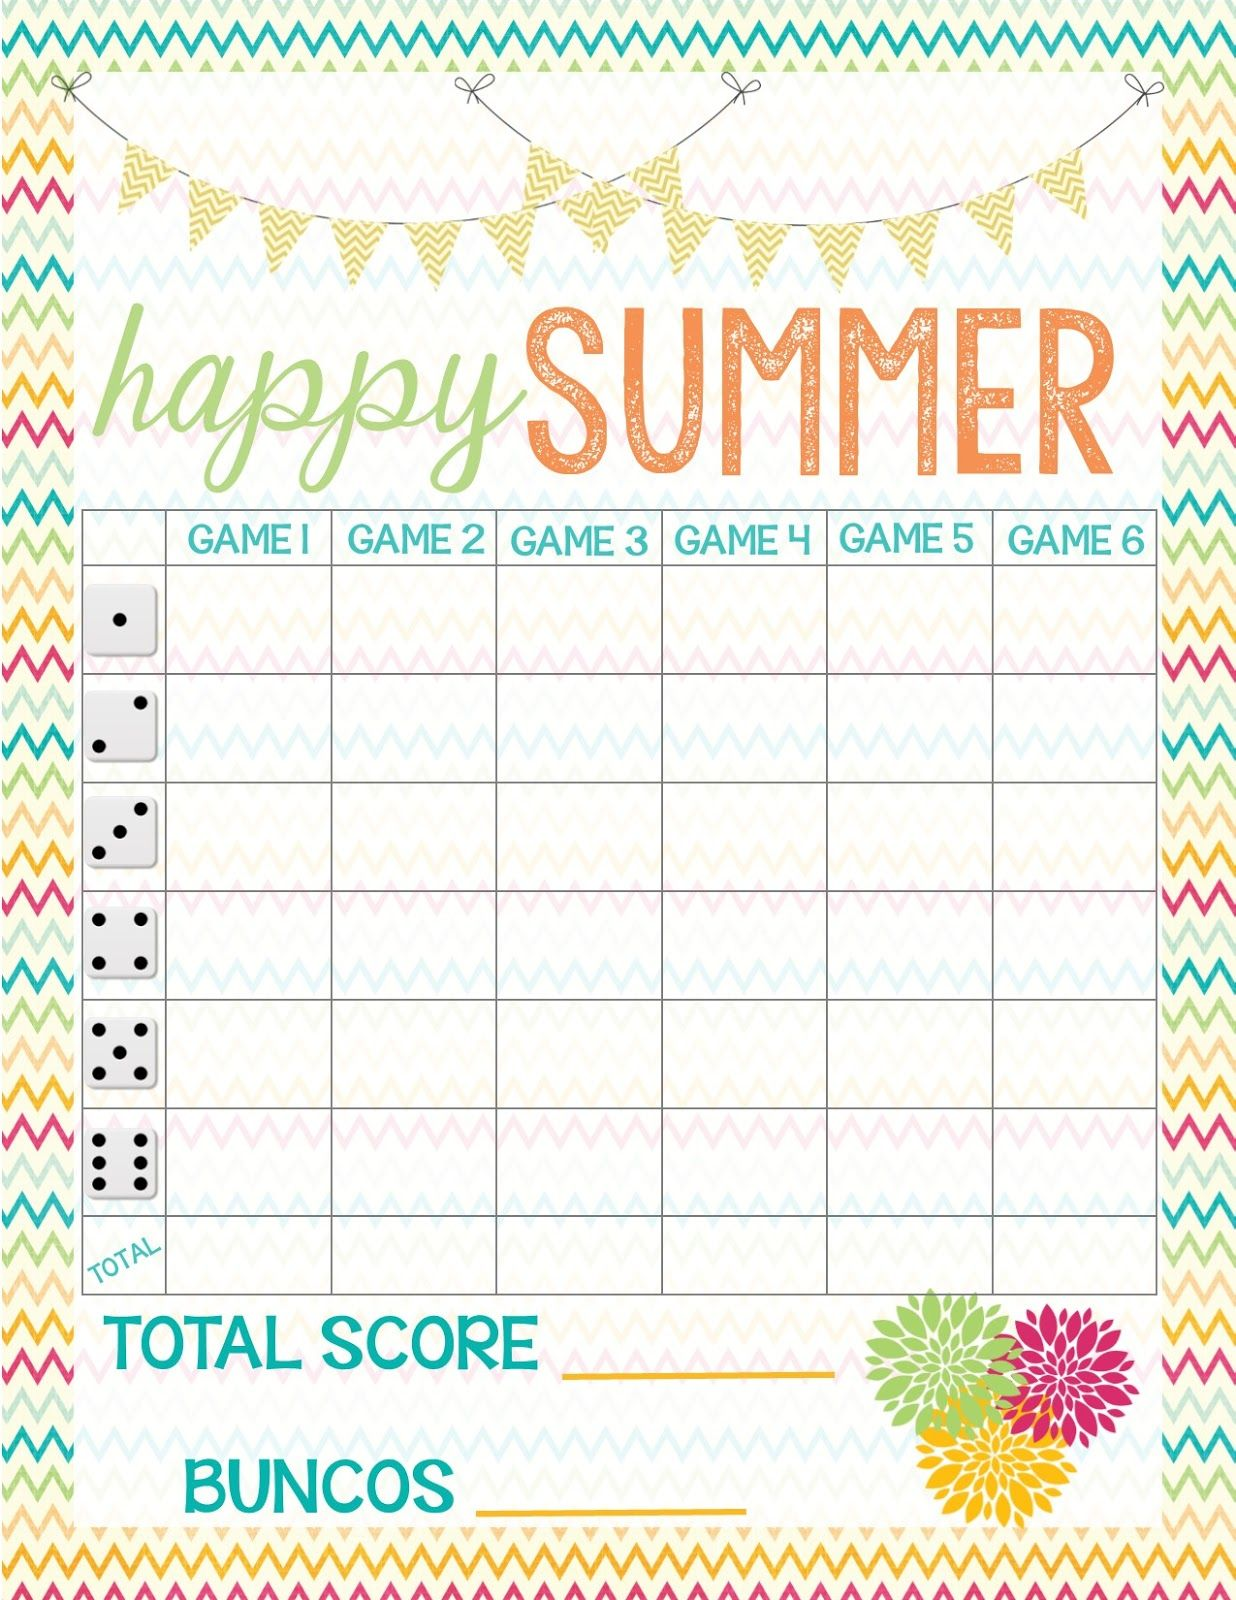 image regarding Free Printable Bunco Table Tally Sheets referred to as Recipes in opposition to Stephanie: Cost-free Bunco Rating Sheet Bunco within